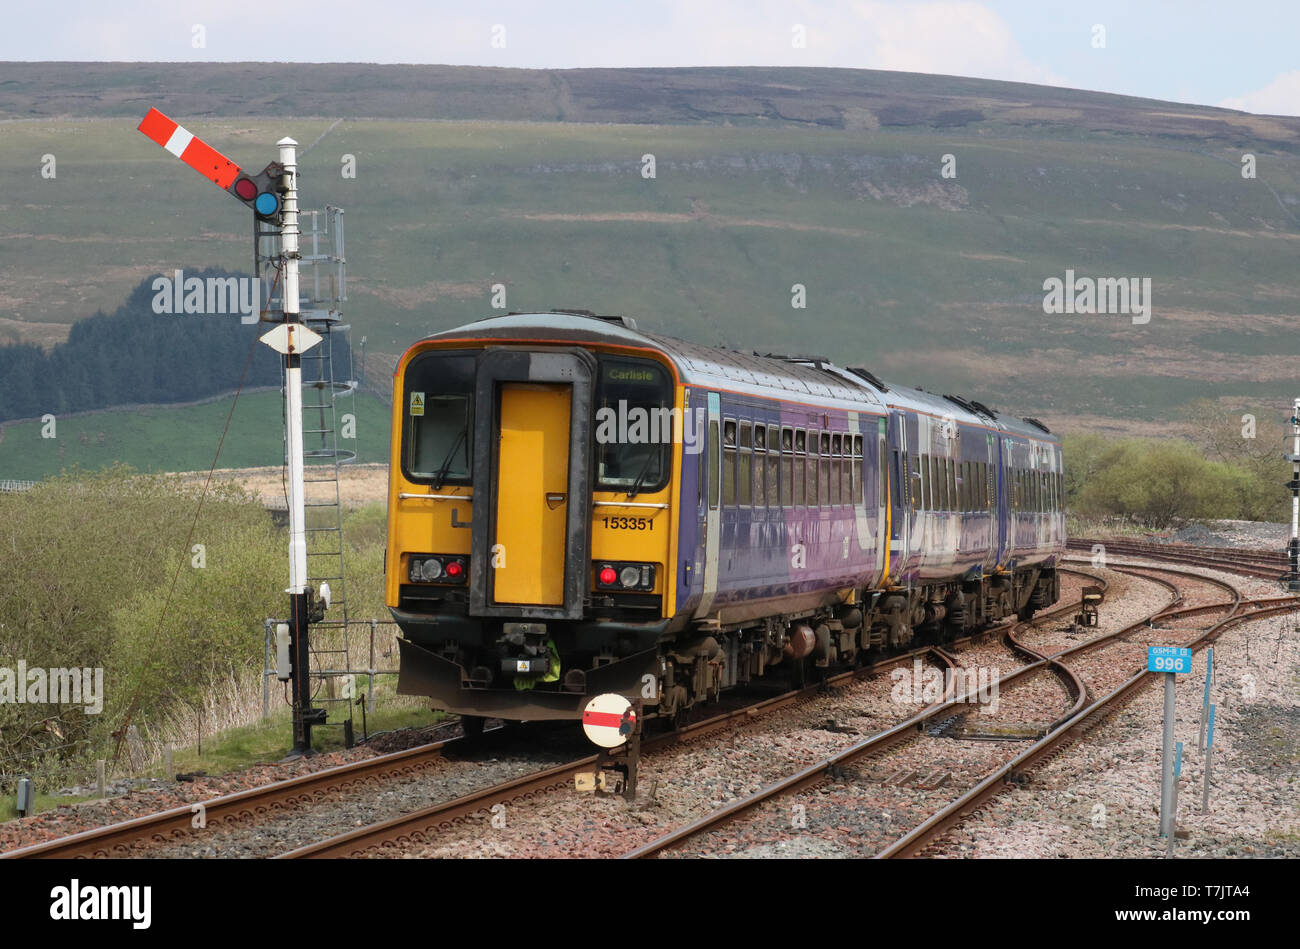 Northern train leaving at Garsdale station on the Settle to Carlisle railway line passing semaphore signal on 30th April 2019. Stock Photo